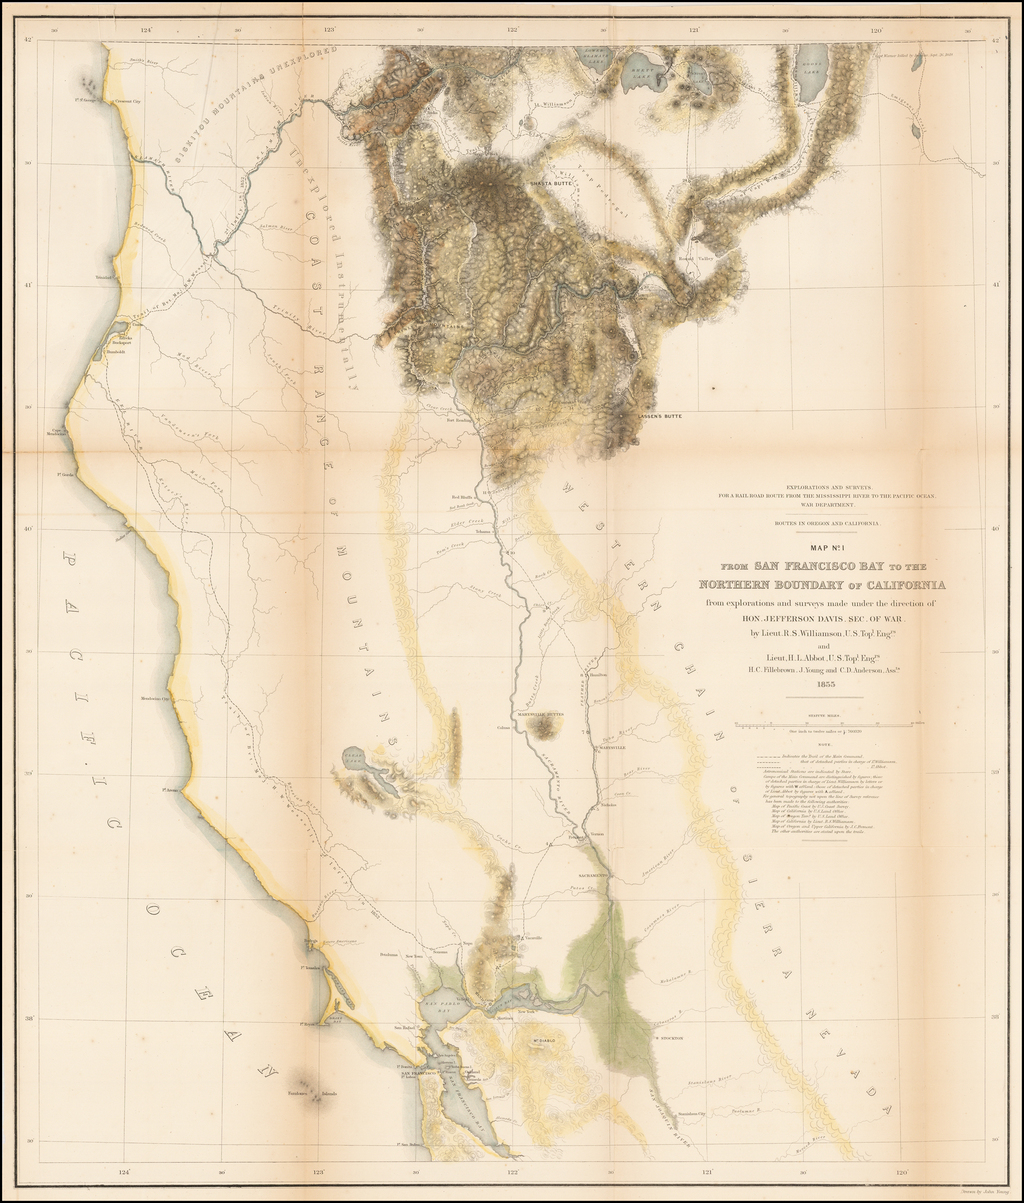 Routes in Oregon and California.  Map No. 1.  From San Francisco Bay to the Northern Boundary of California from explorations and surveys made under the direction of Hon. Jefferson Davis . . . by Lieut. R.S. Williamson . . . and Lieut H.L. Abbot . . . 1855 By U.S. Pacific RR Surveys